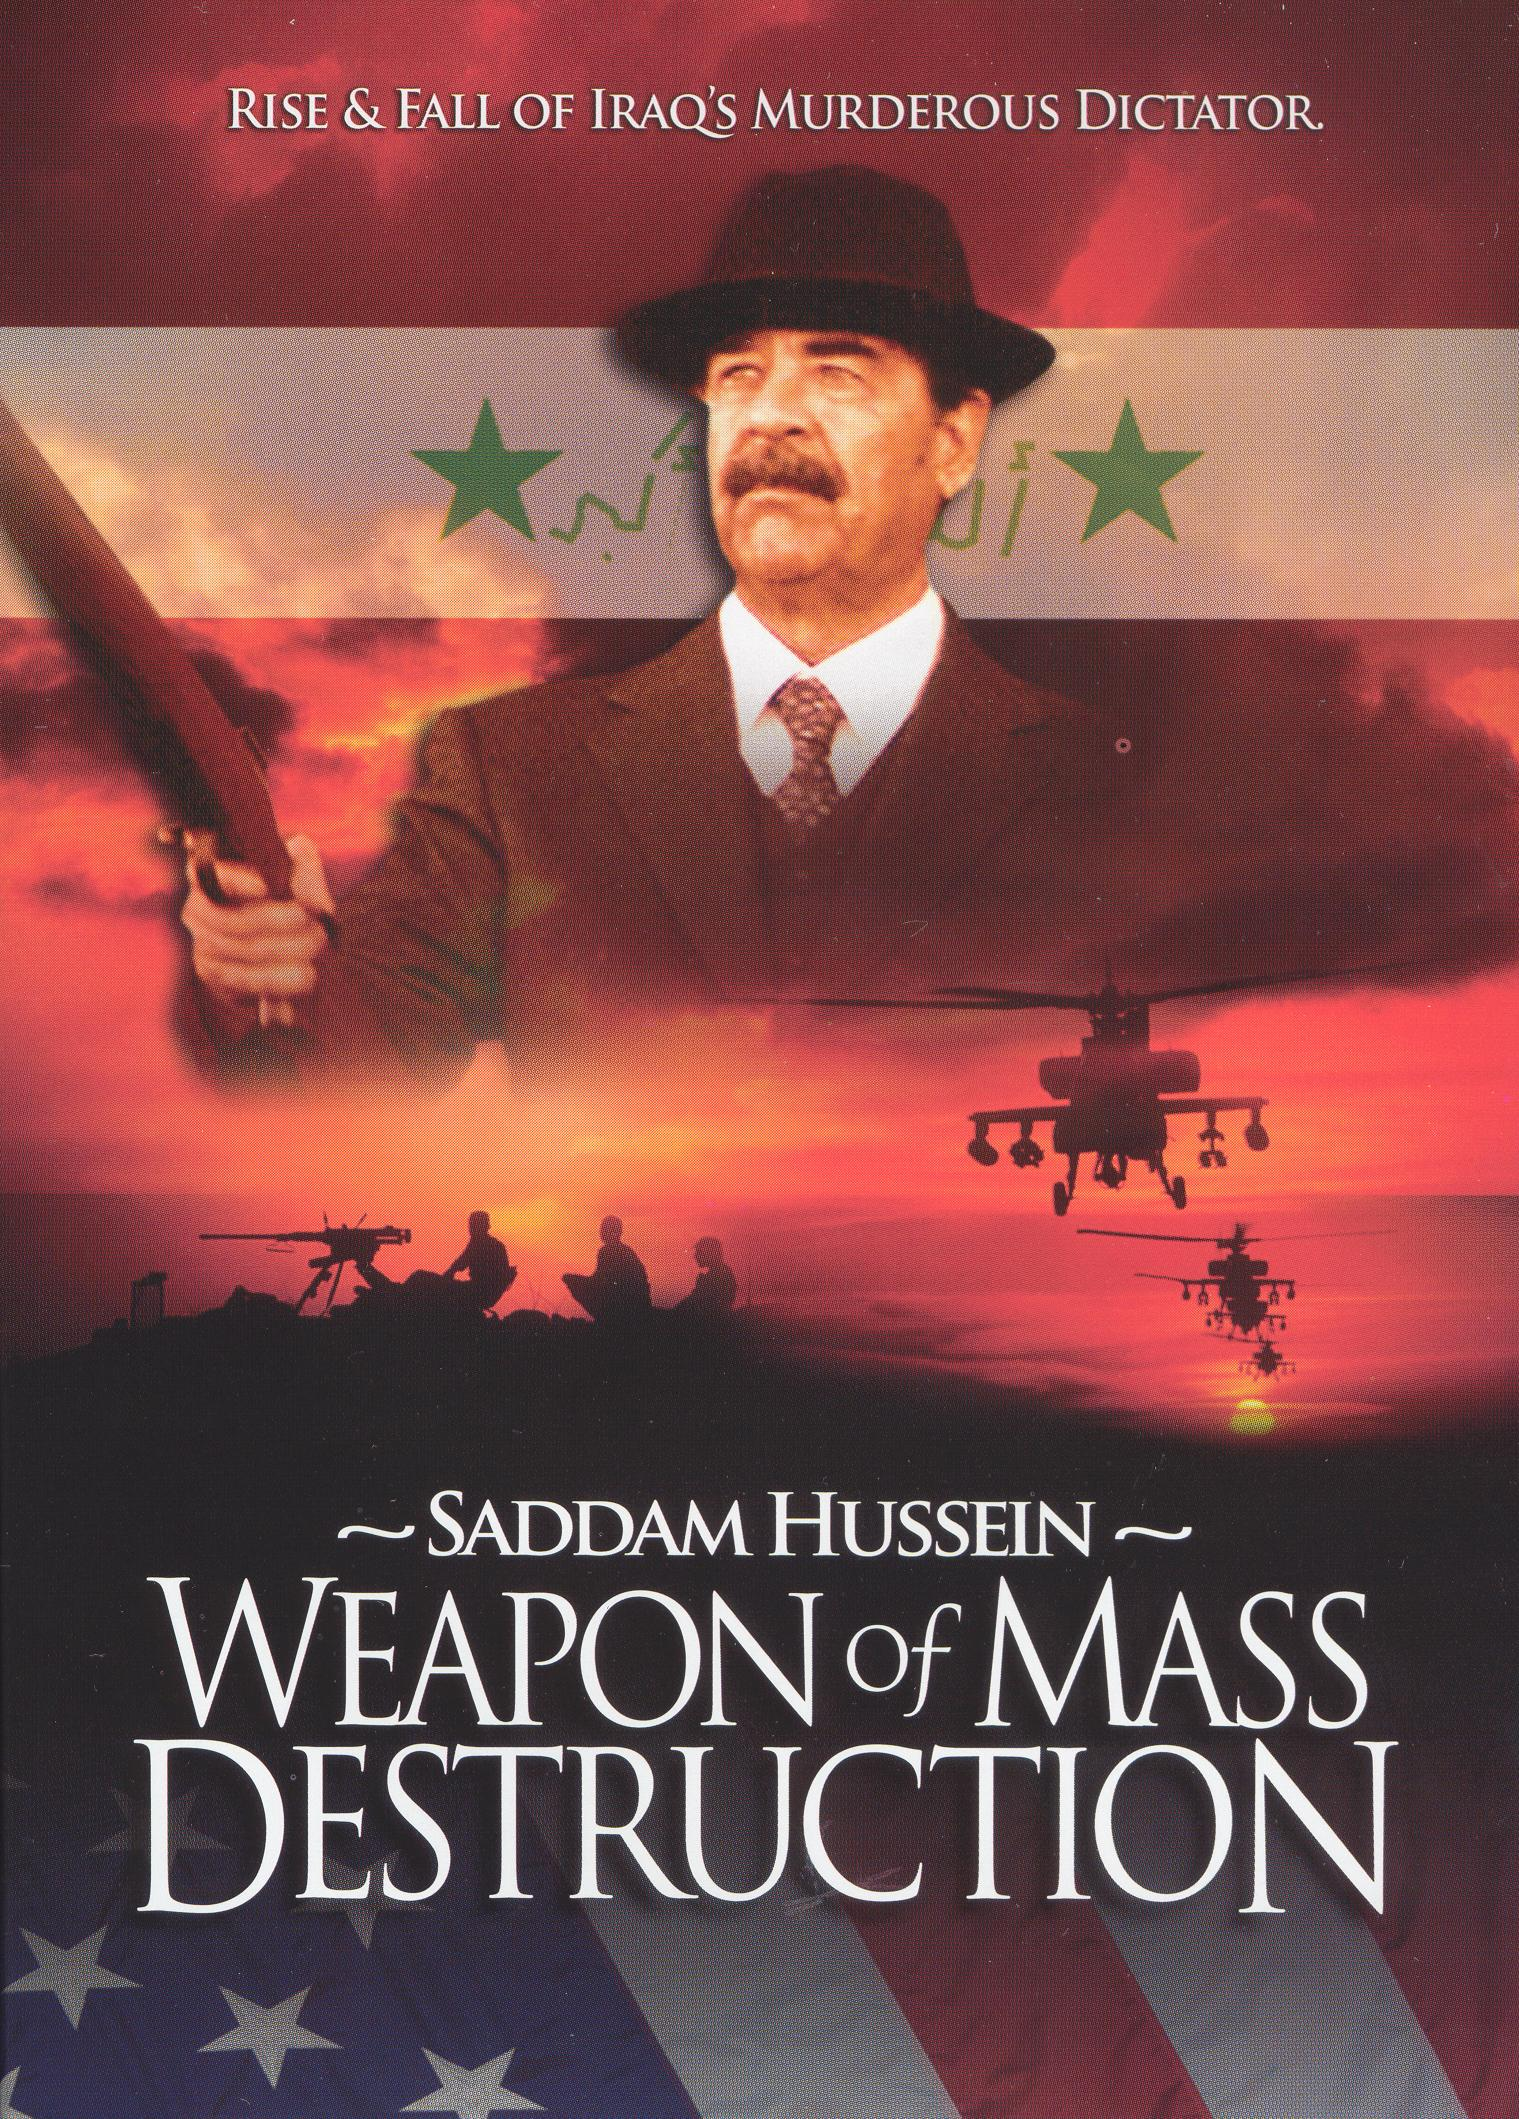 Saddam Hussein: Weapon of Mass Destruction